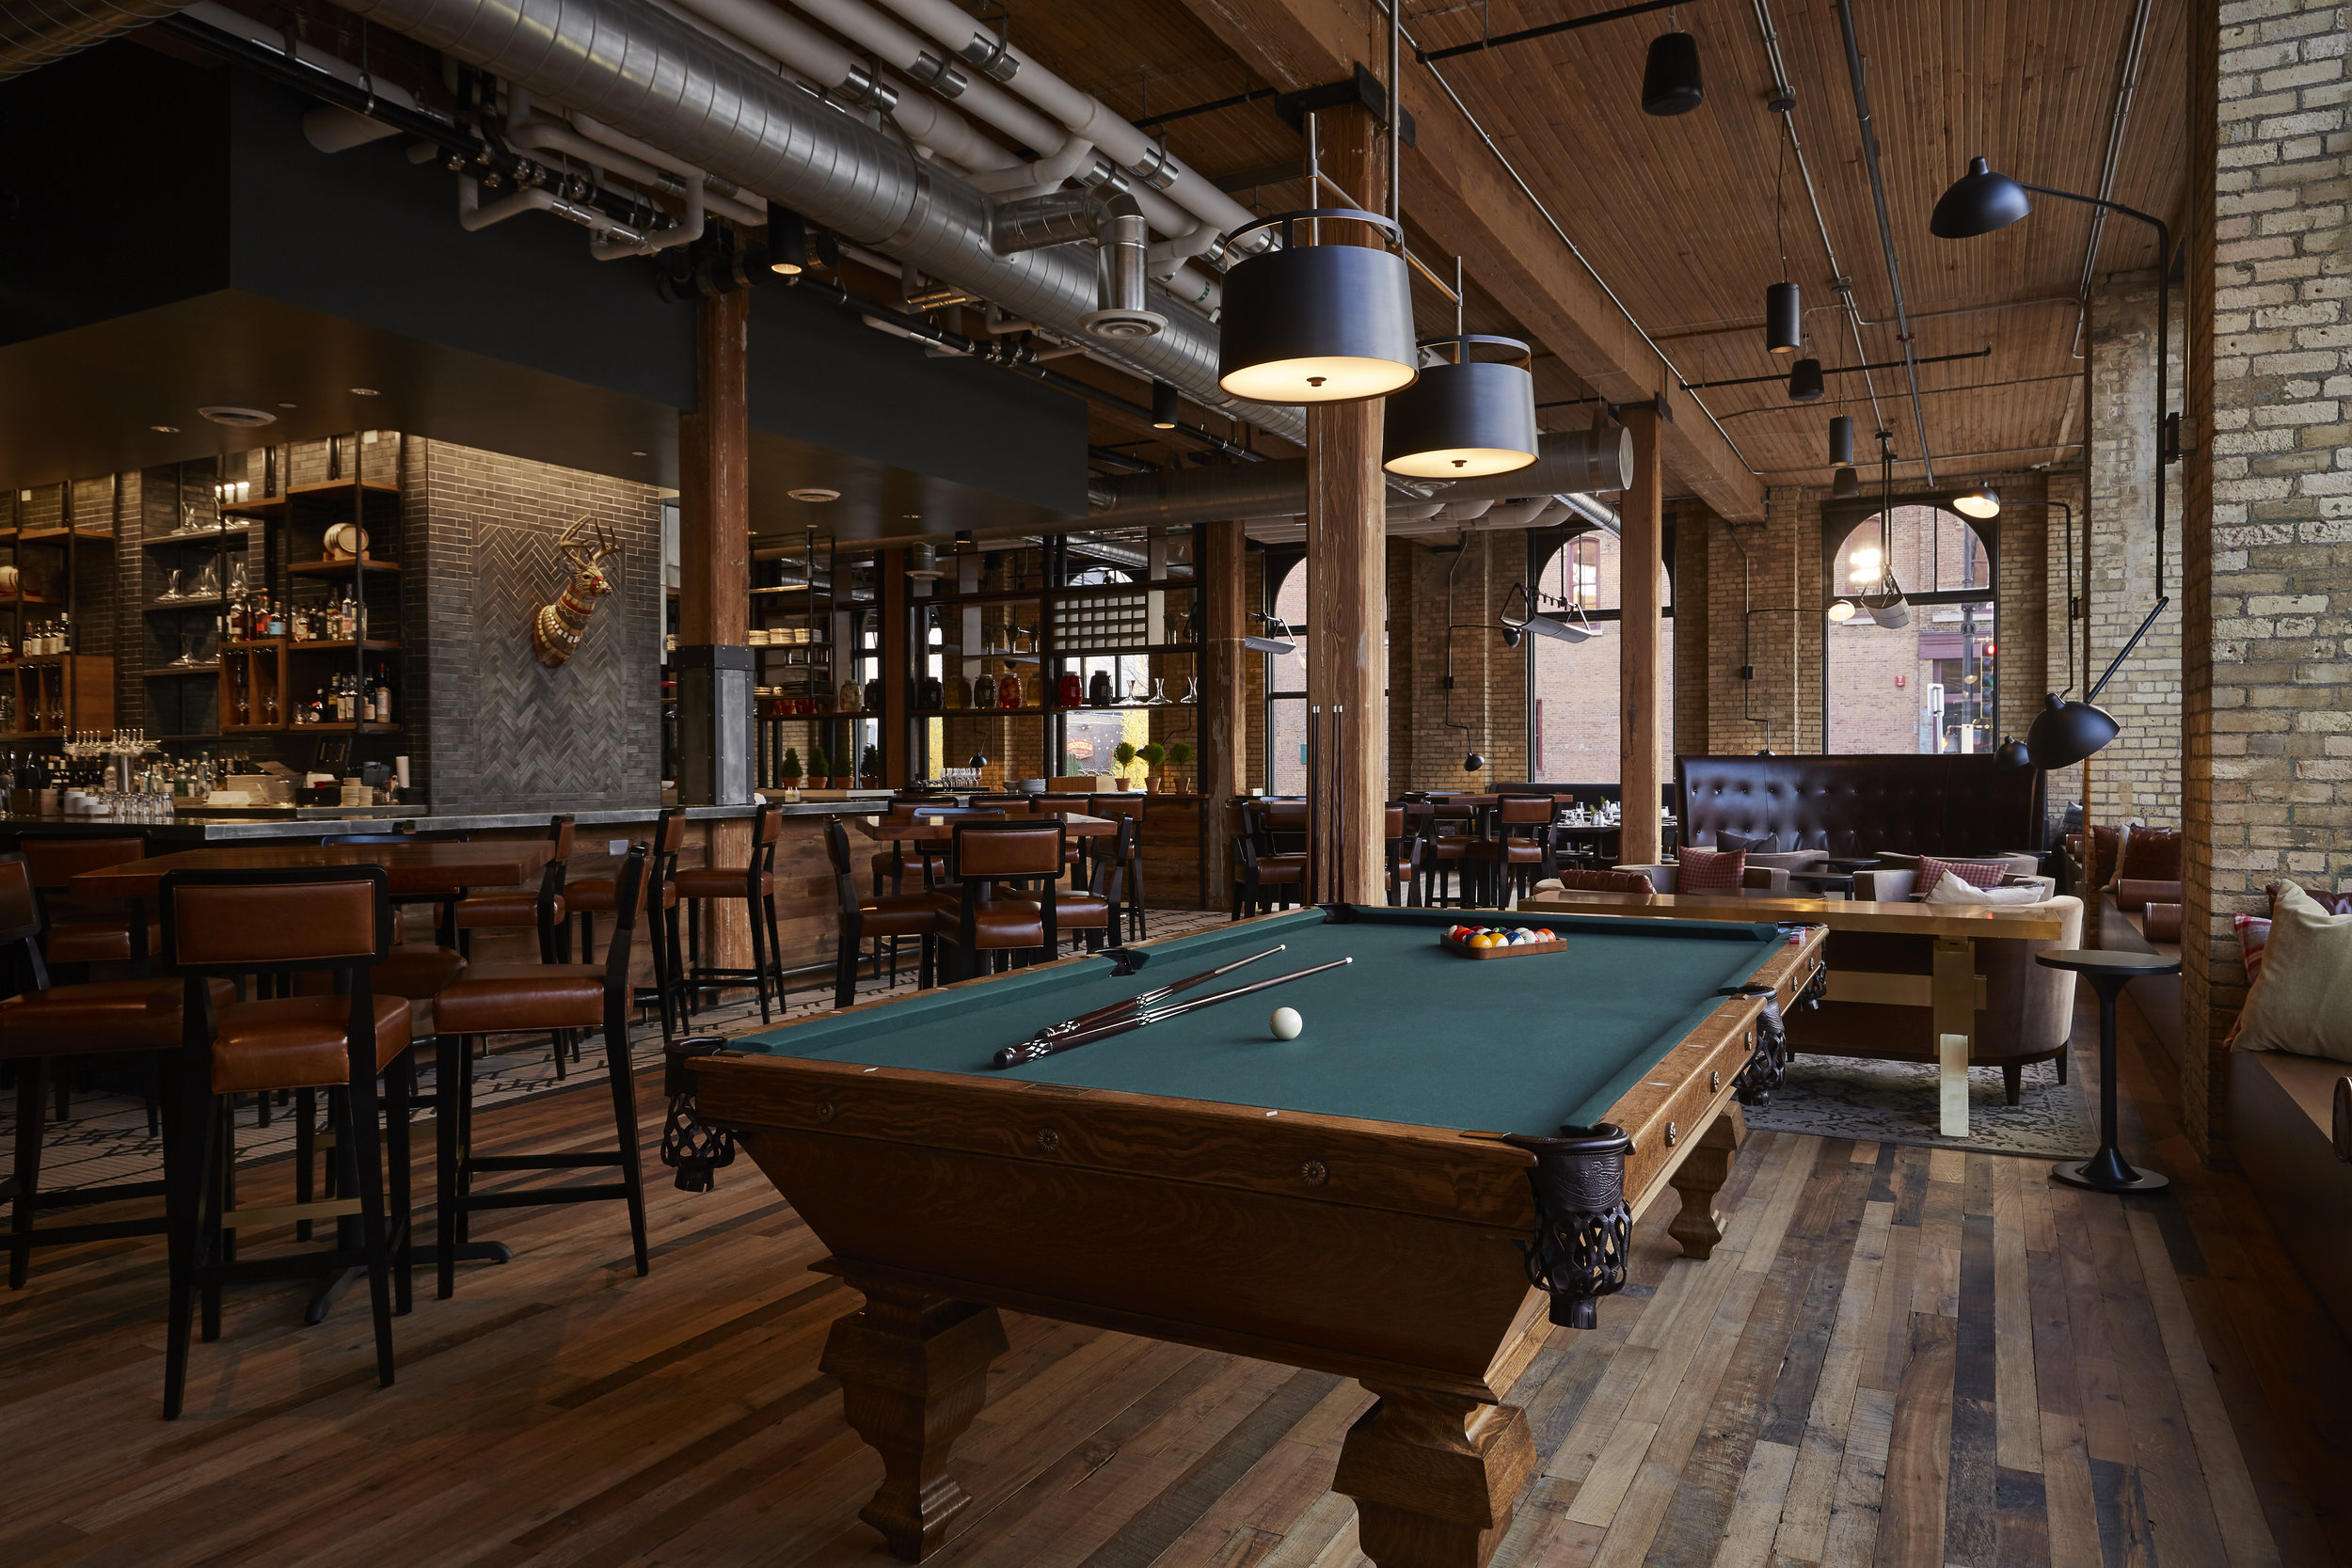 Hewing Hotel - The Hewing Hotel, built in 1897, is a prime example of a brick-and-timber warehouse—trains used to roll directly into the basement! Today, visit to experience the hotel's year-round rooftop, the Library Lounge and its restaurant Tullibee, with cuisine inspired by Minnesota's woods and lakes.